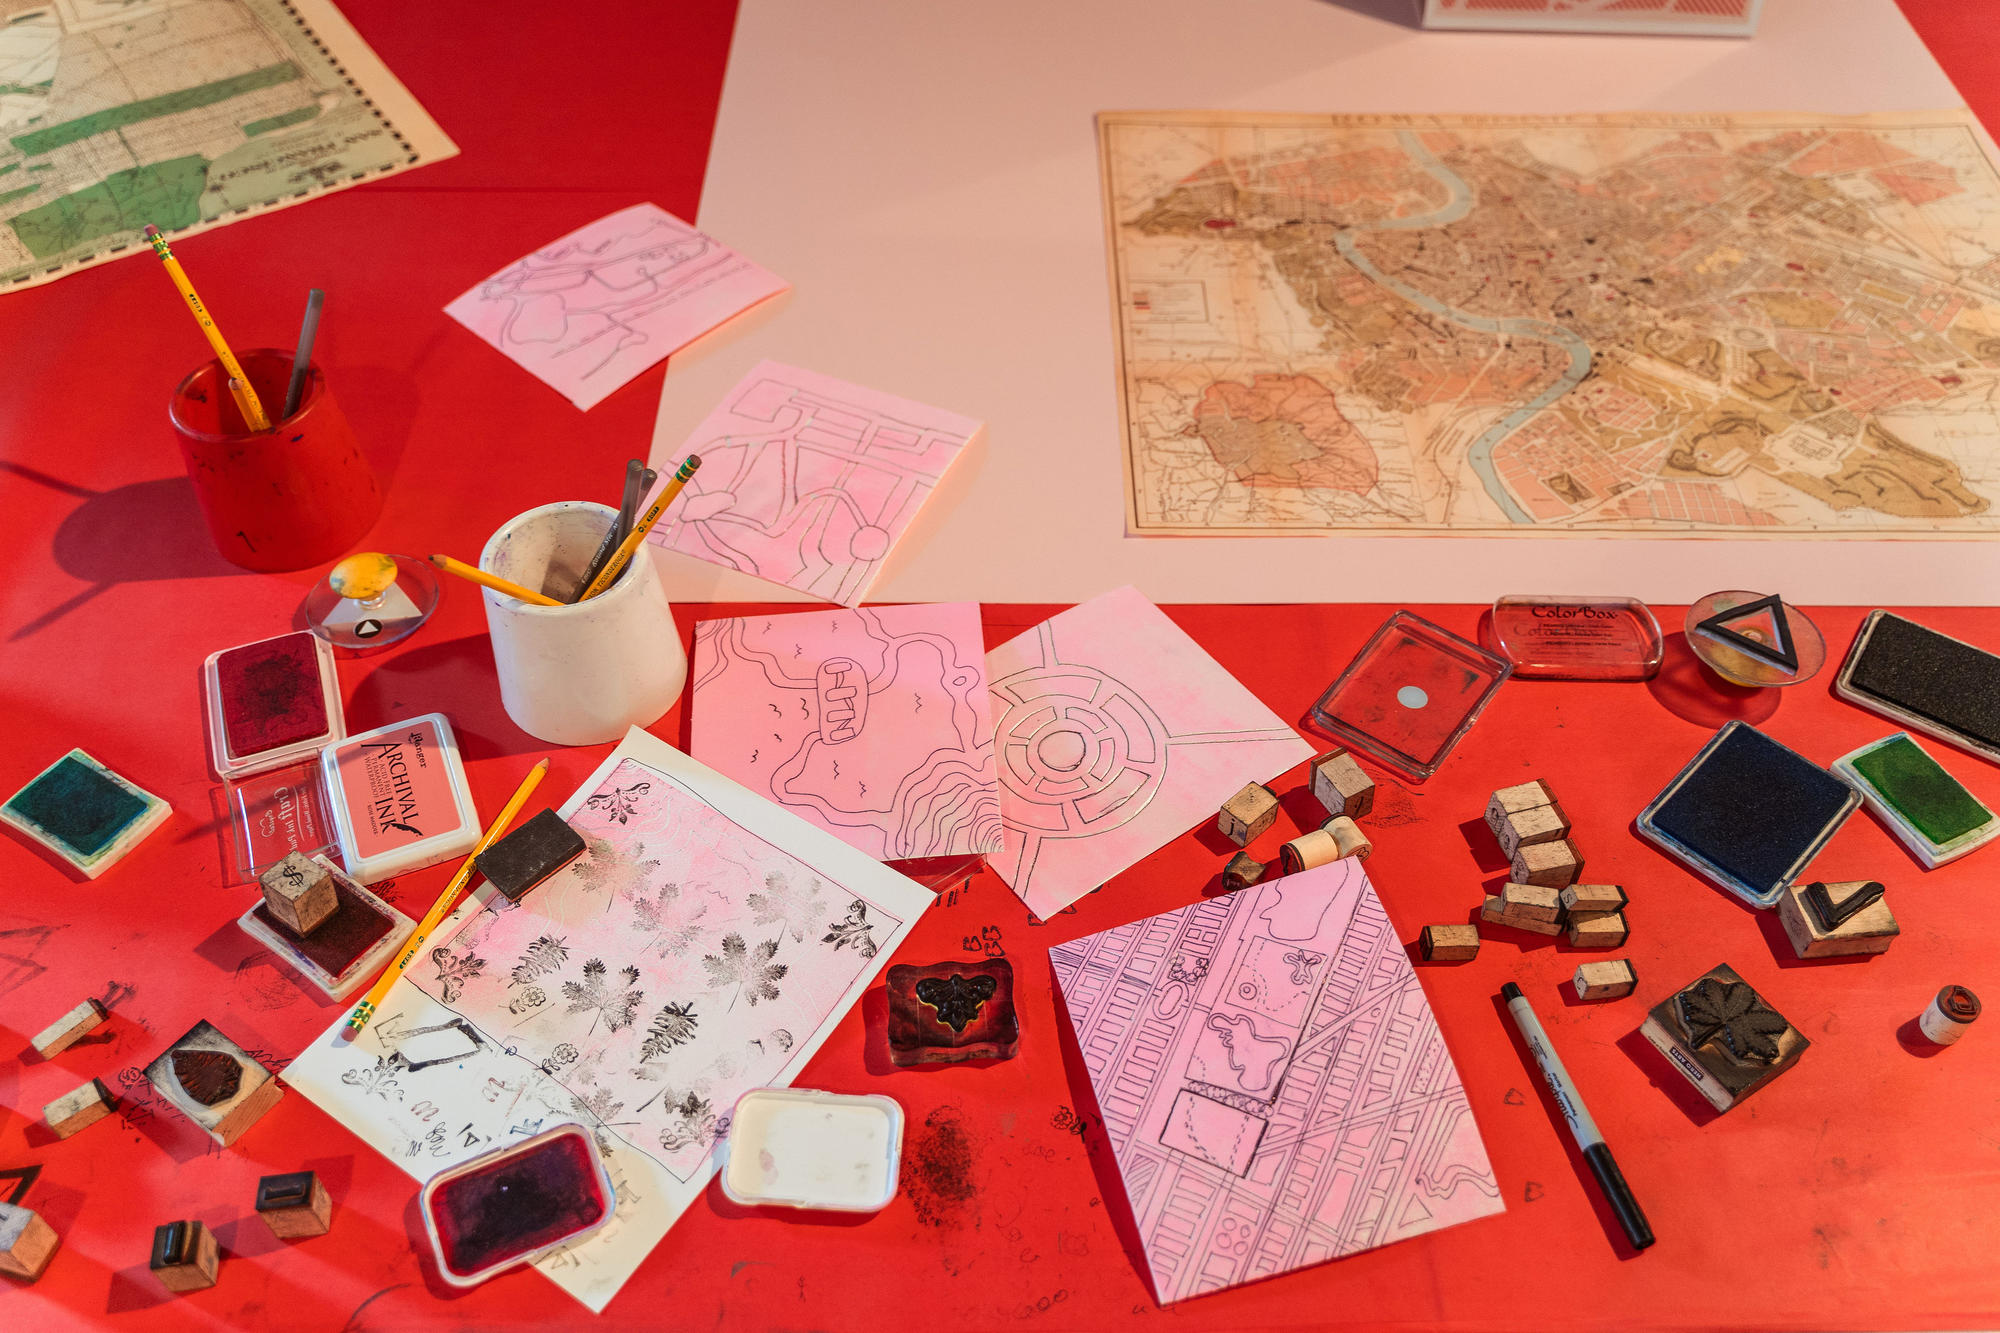 Close up of a Studio table during Anthony Peña's Mapping a Better Future project in summer 2019.